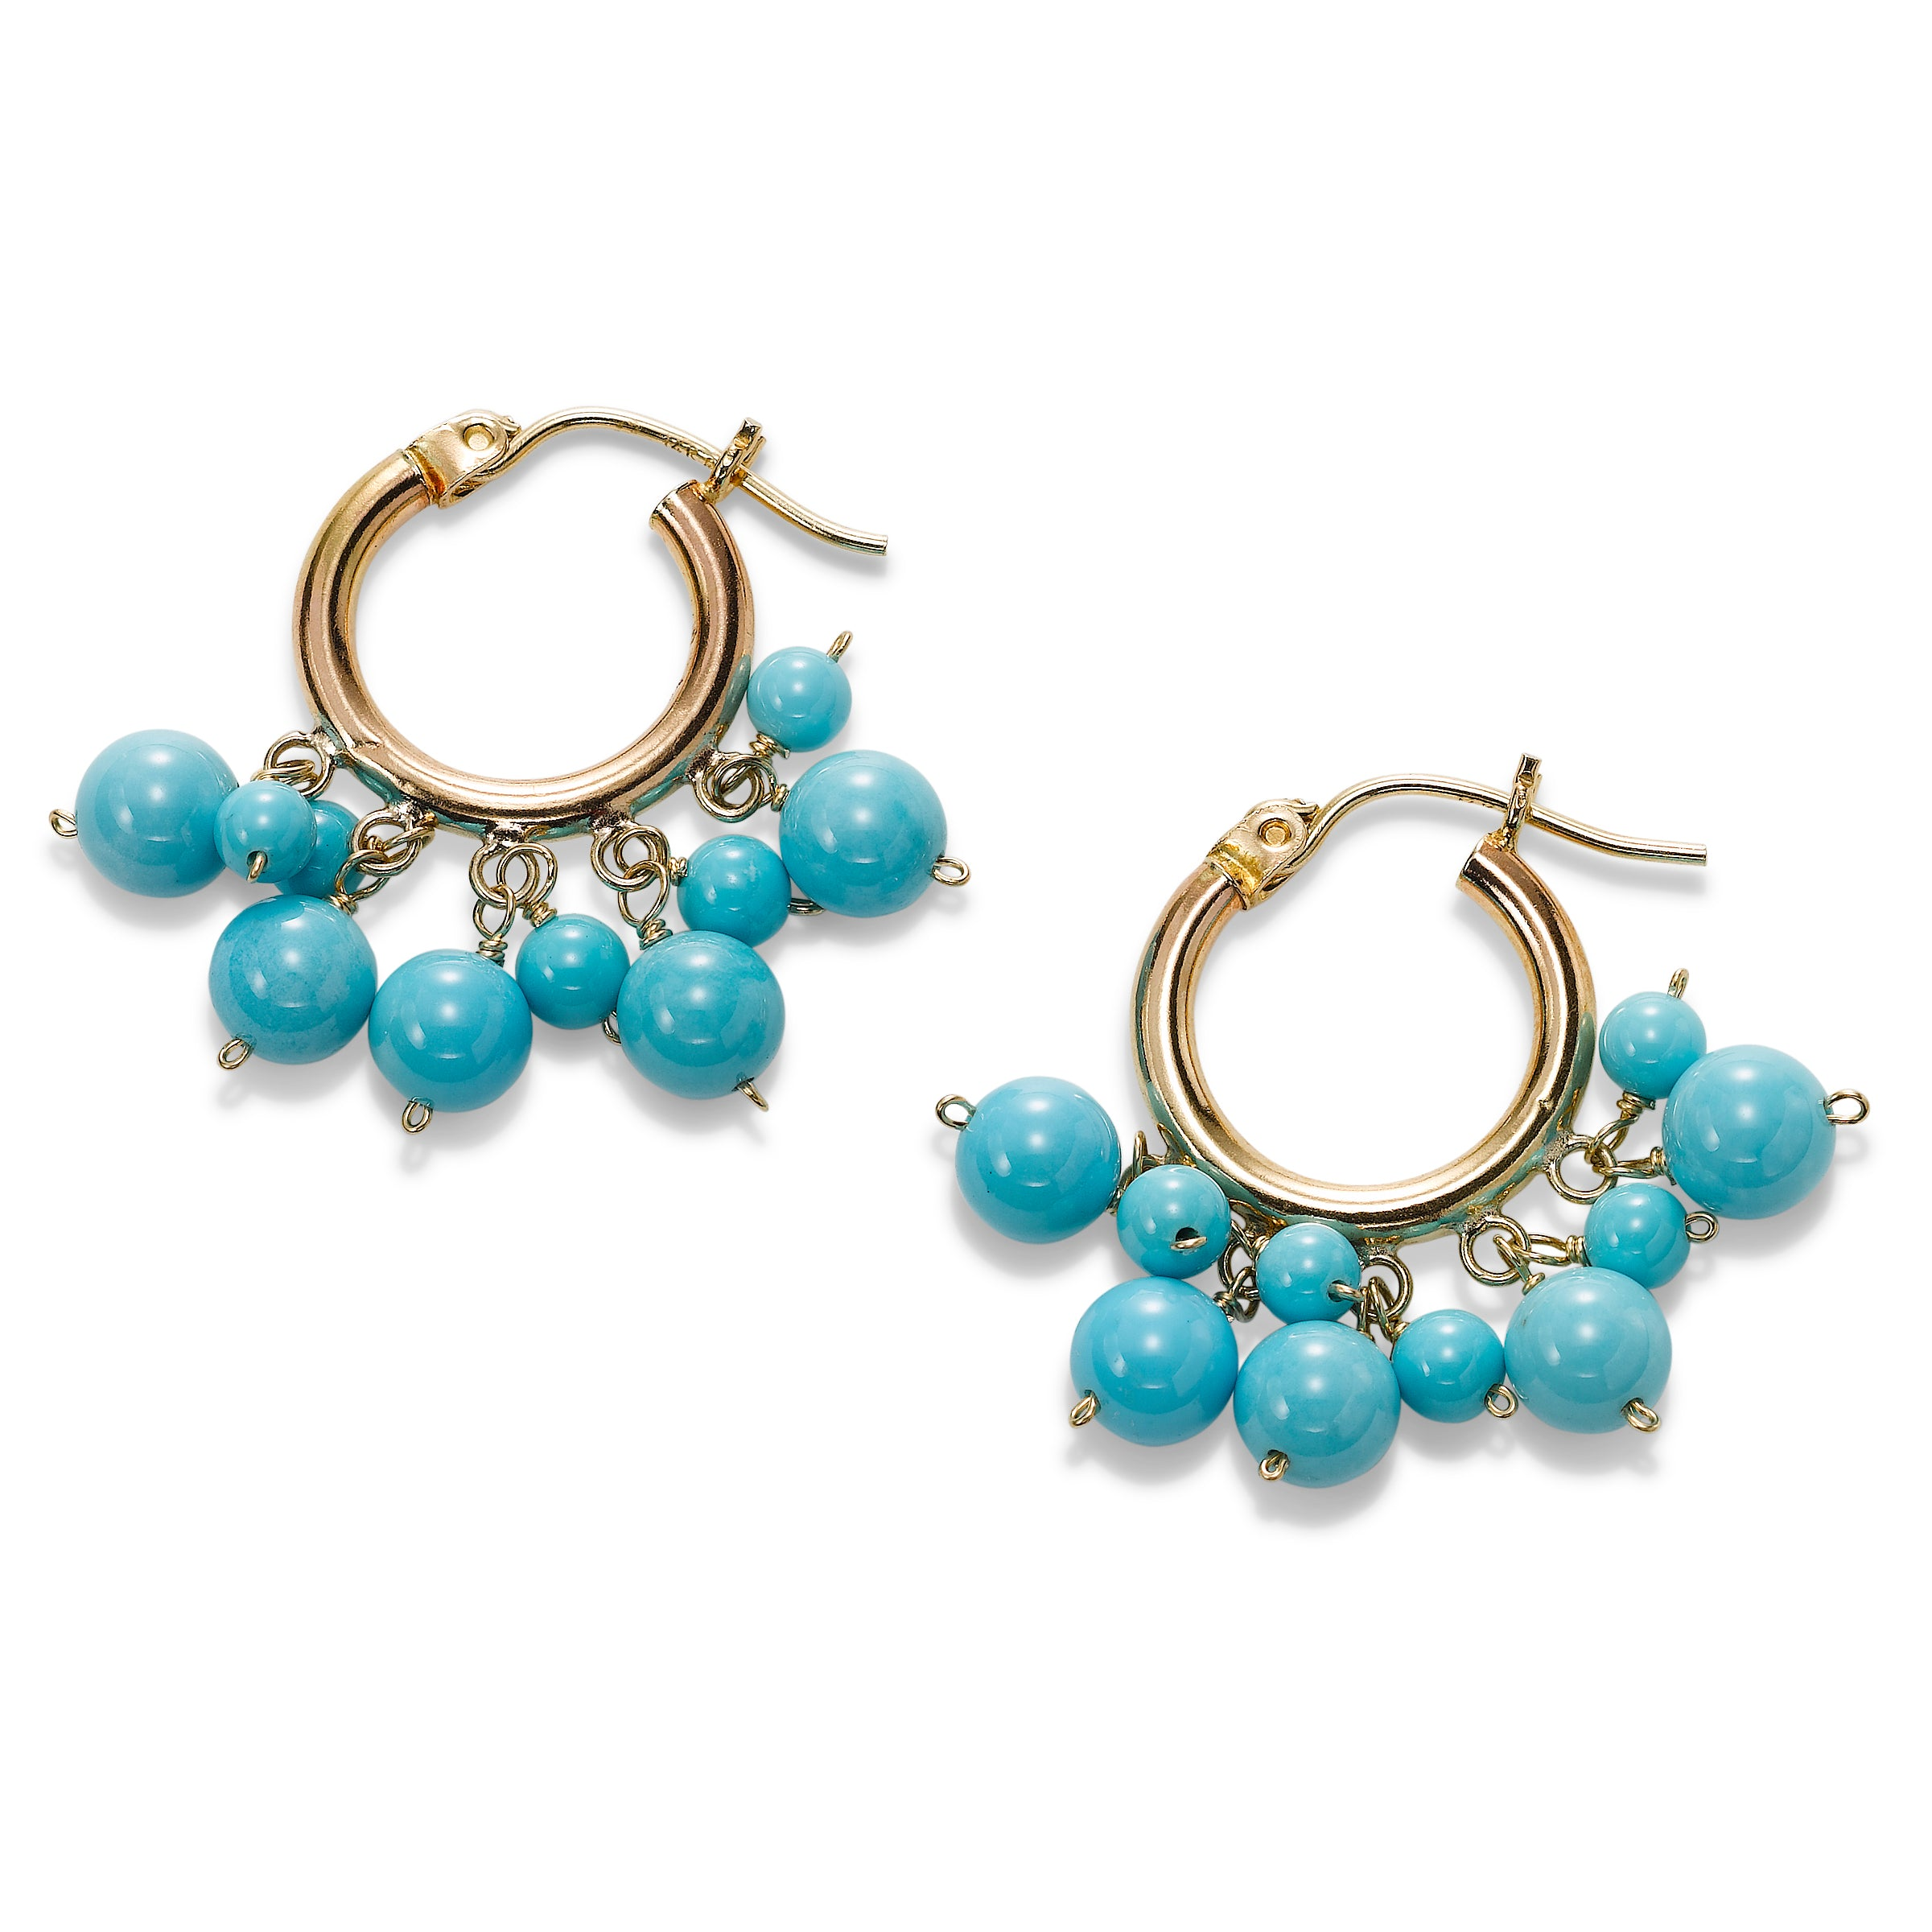 Turquoise Dangle Hoop Earrings, 14K Yellow Gold